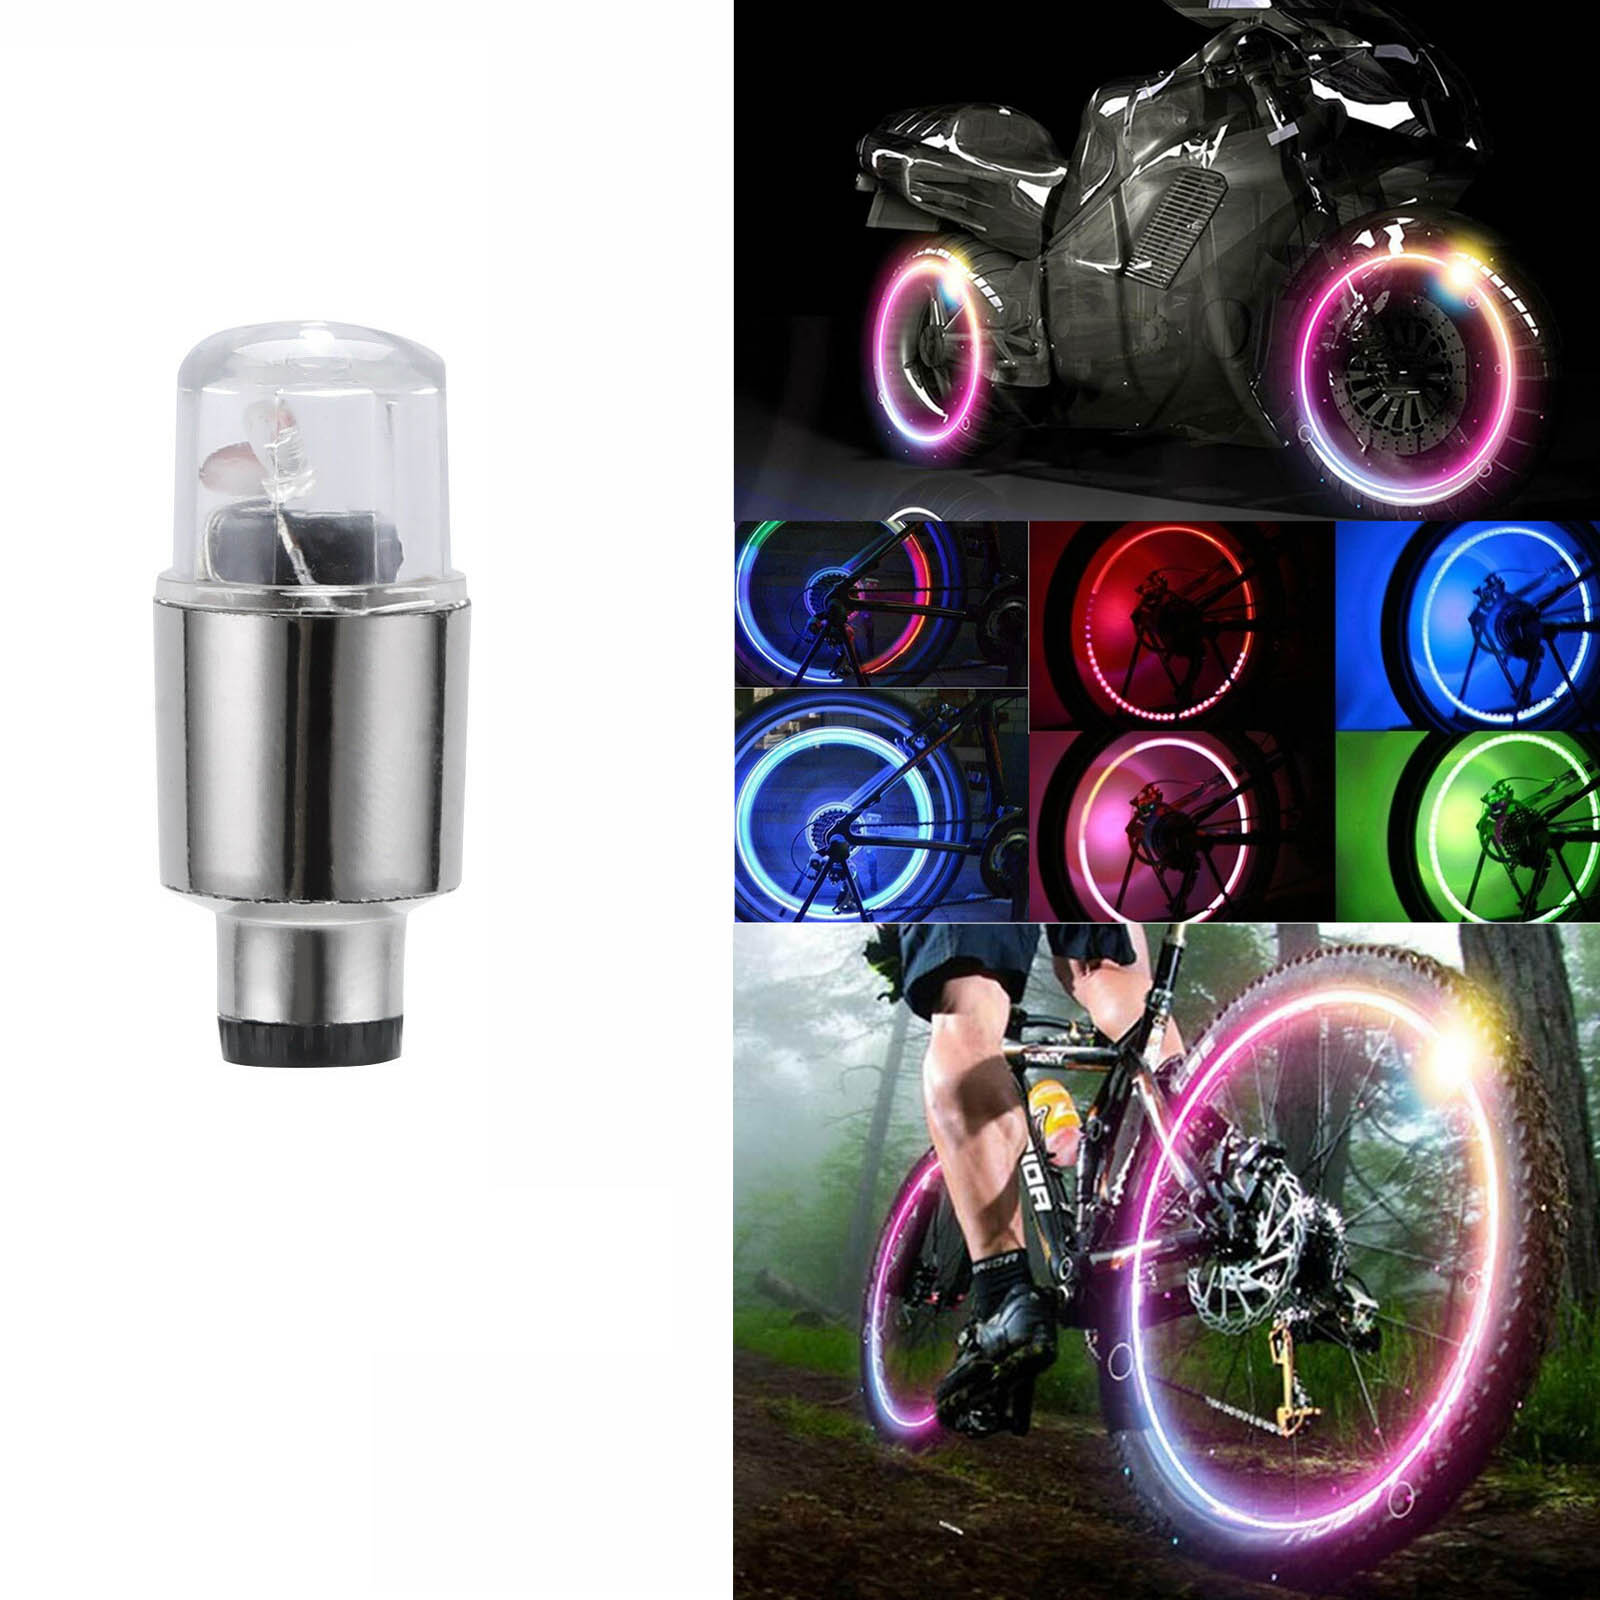 LED Car Bike Wheel Tire Tyre Valve Dust Cap Spoke Flash Lights Car Valve Stems Caps Accessories 4 Color Red Blue Green Lamp